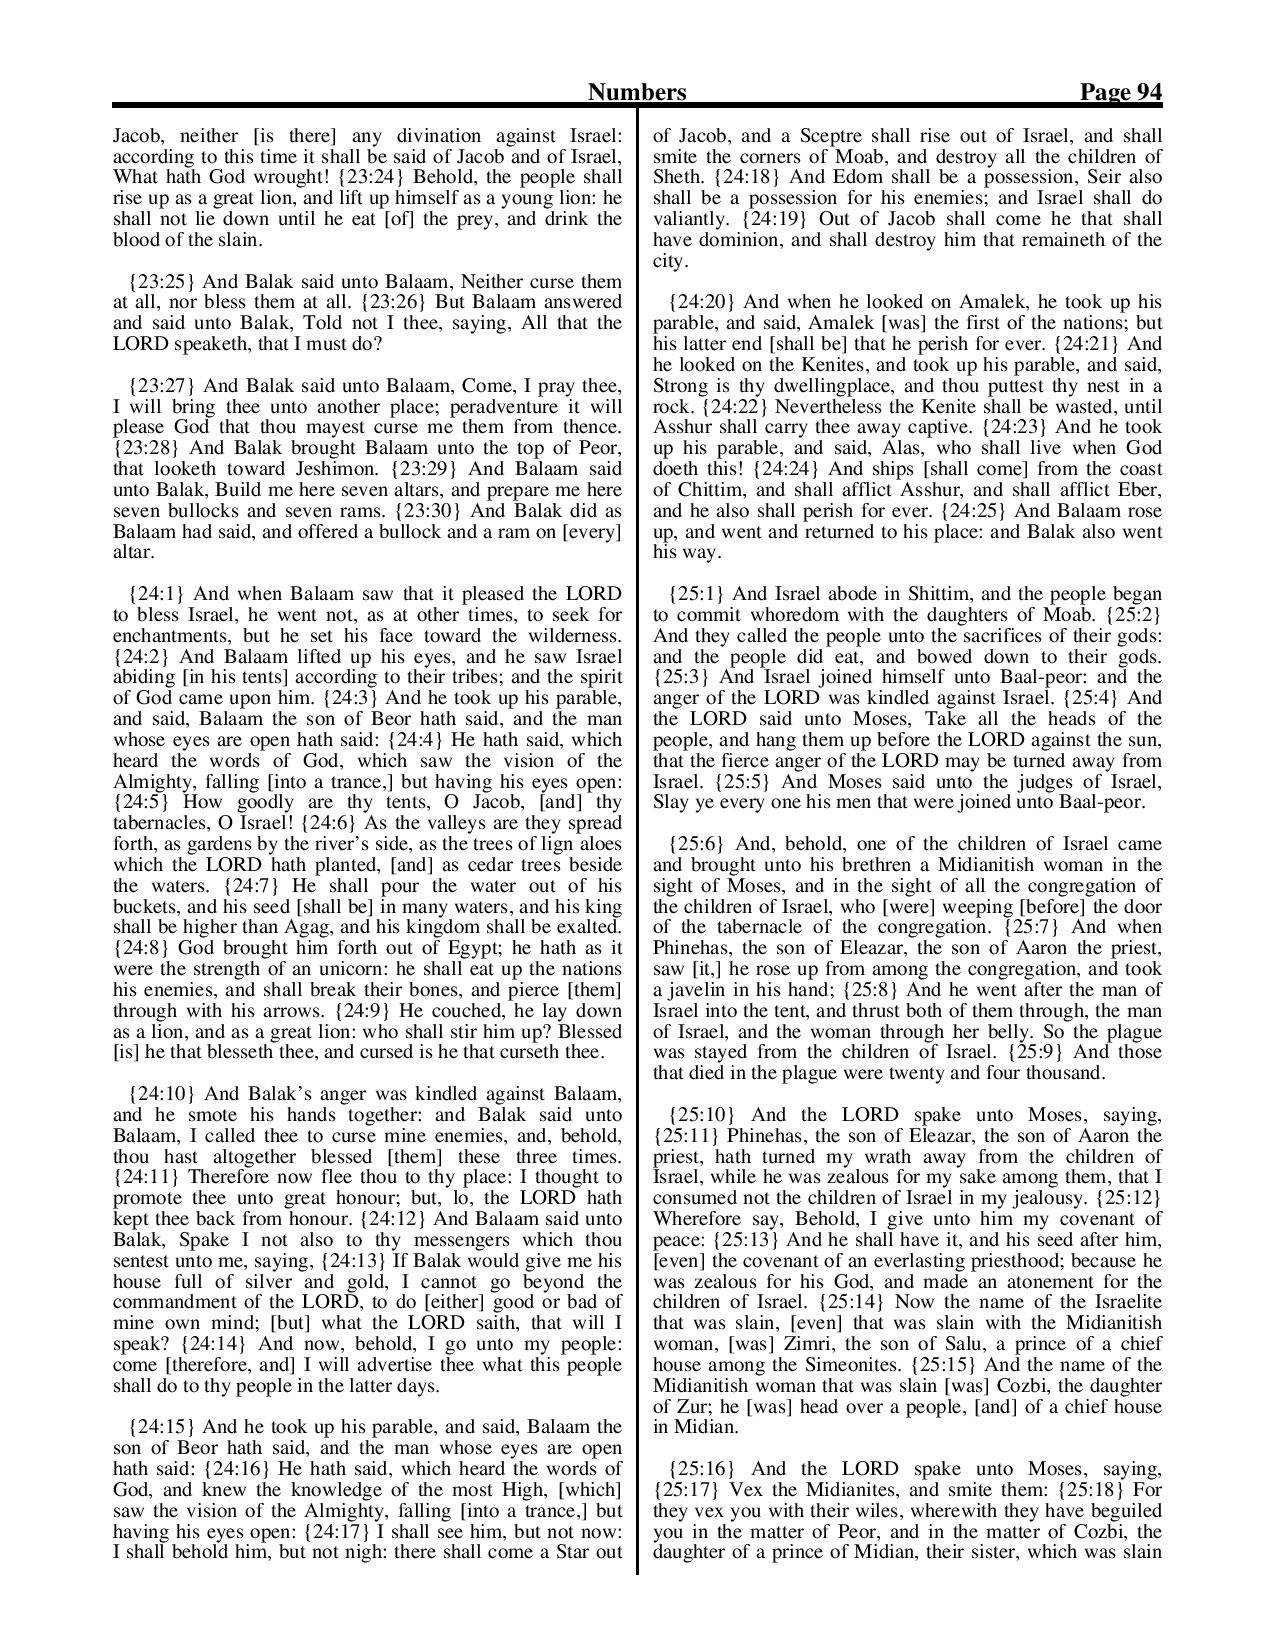 King-James-Bible-KJV-Bible-PDF-page-115